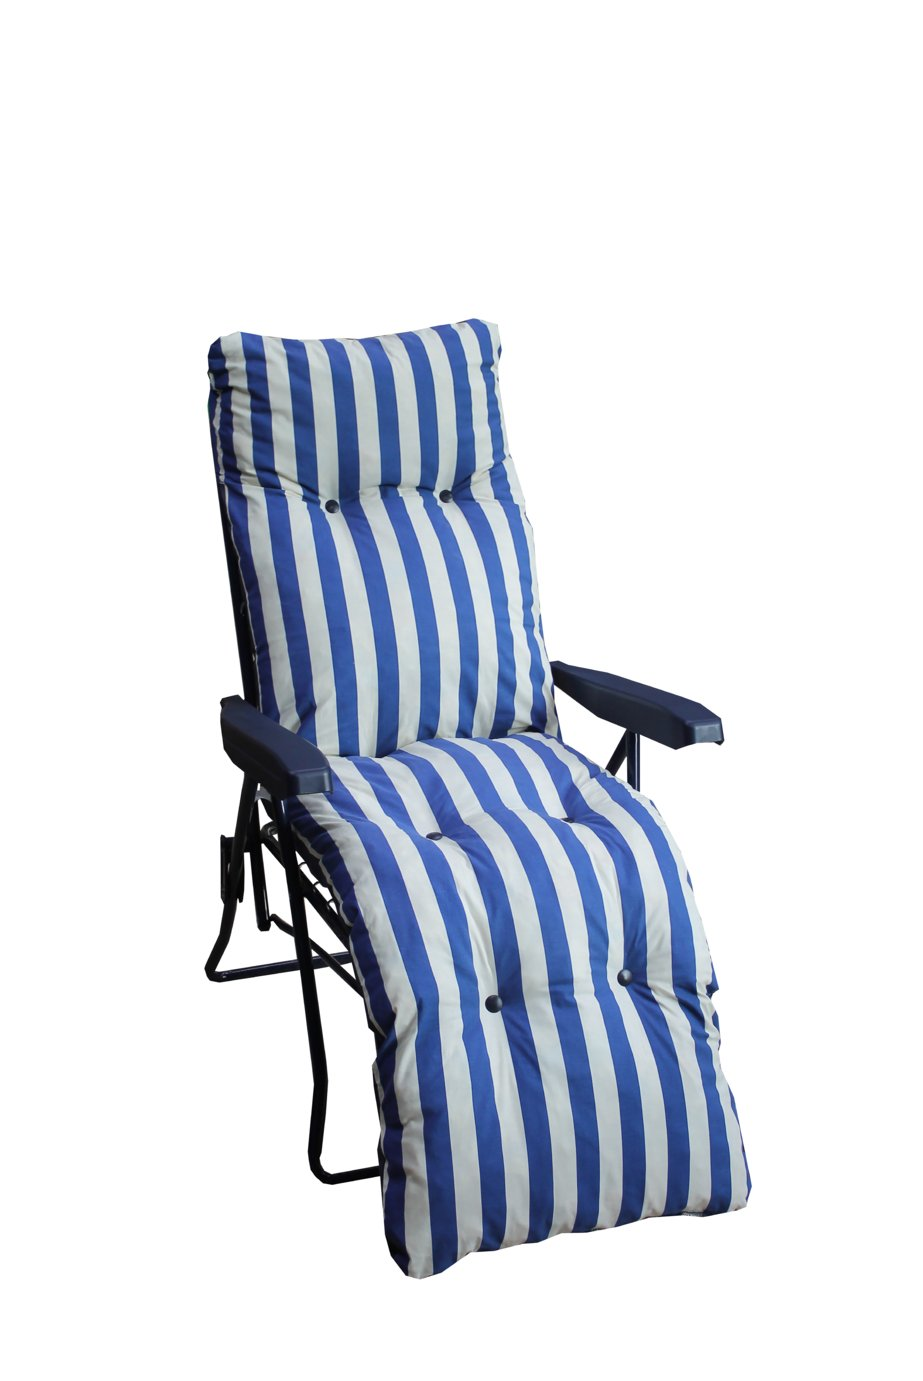 Striped Foldable Multi-Position Sun Lounger with Cushion  sc 1 st  Argos & Garden chairs and sun loungers | Argos